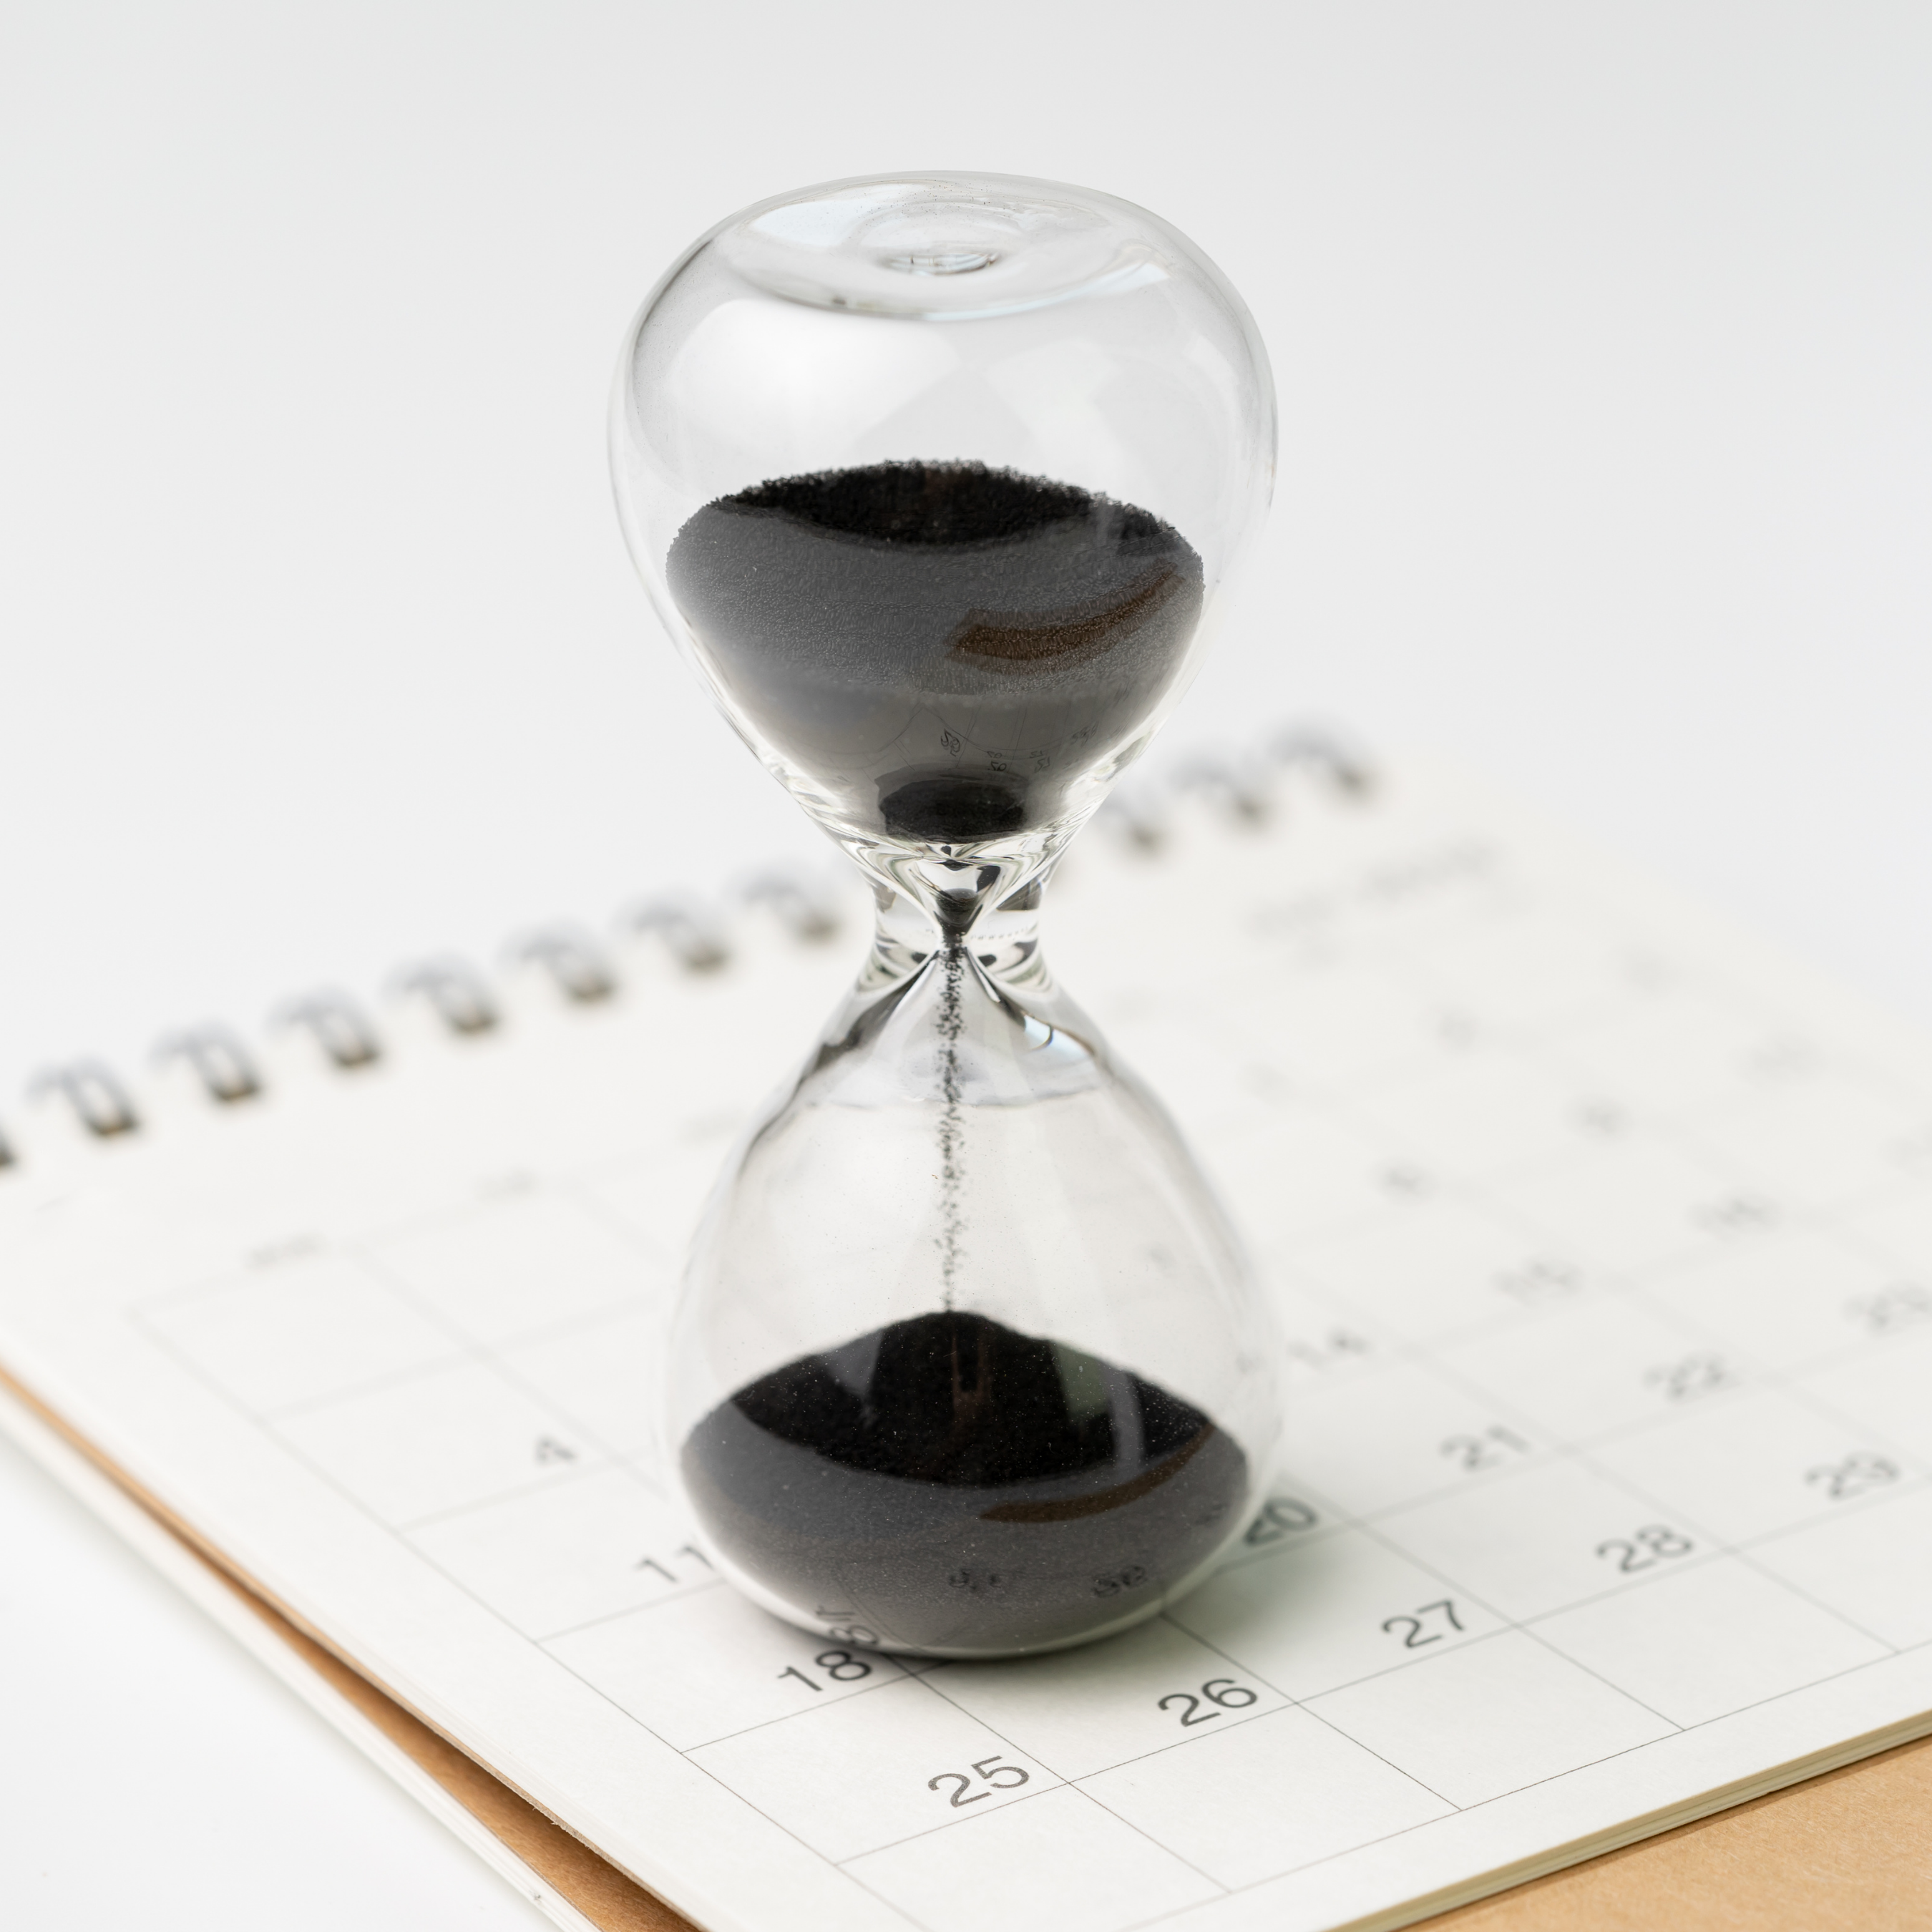 Getting Real About Timeframes